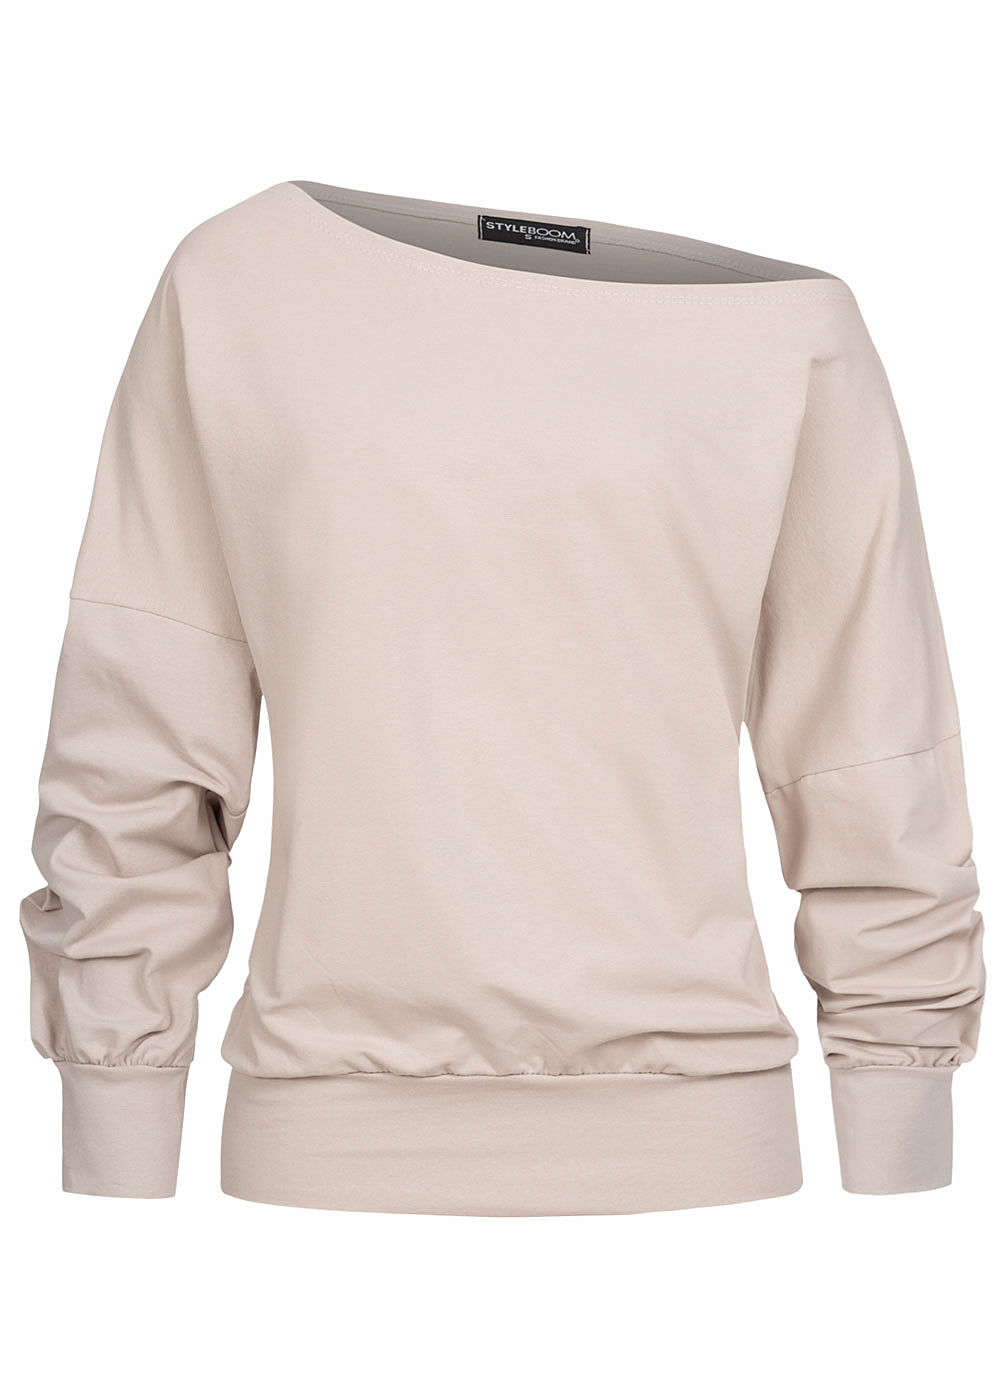 Styleboom Fashion Damen One-Shoulder Fledermausarm Pullover beige - Art.-Nr.: 20016093-XXL-BE